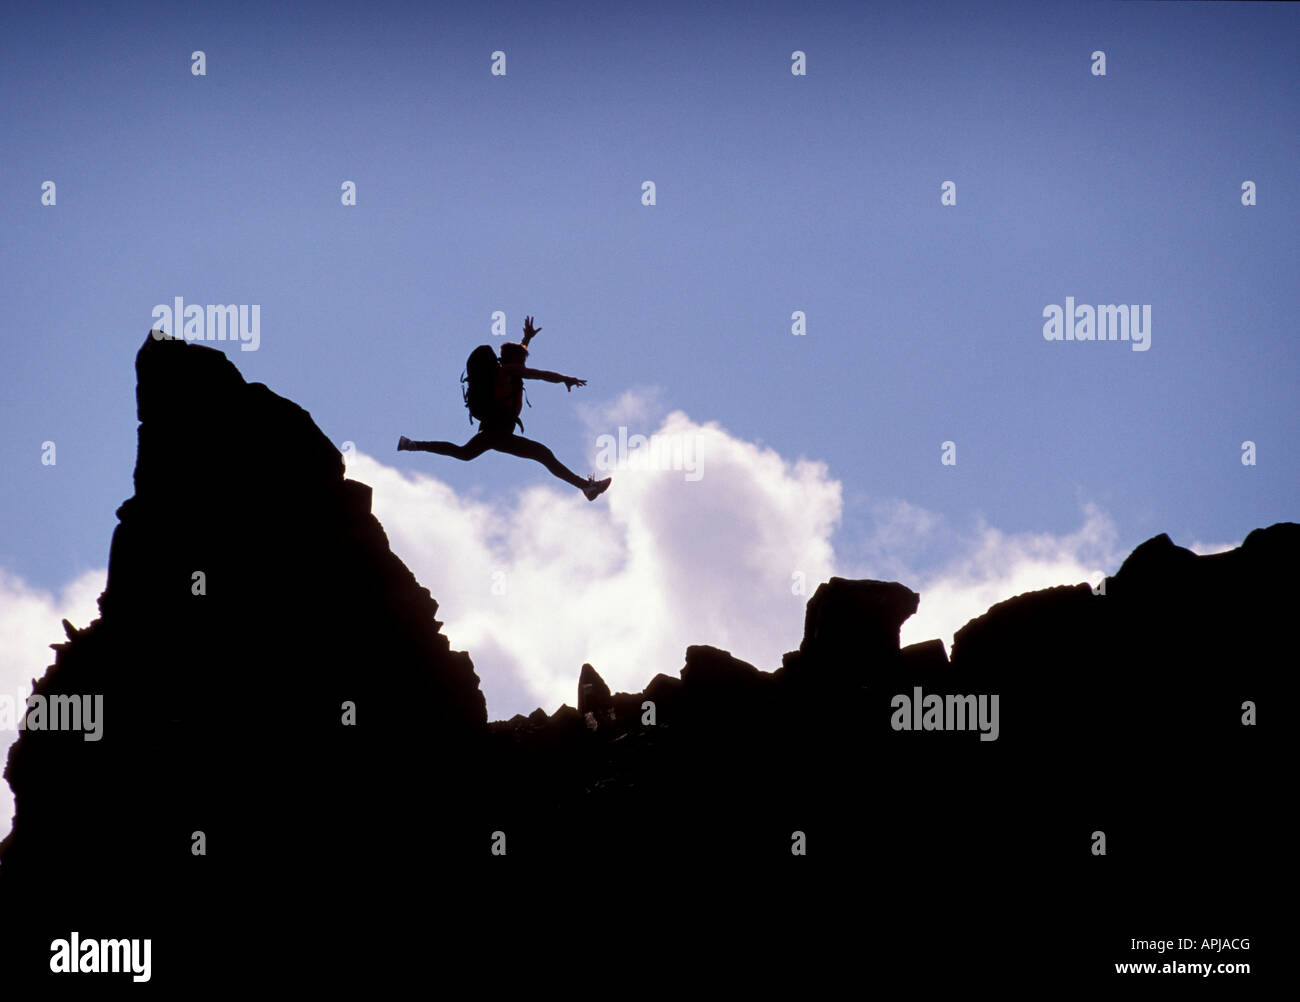 A climber leaps from rock pinnacle during a climb on a sunny day in rugged country - Stock Image